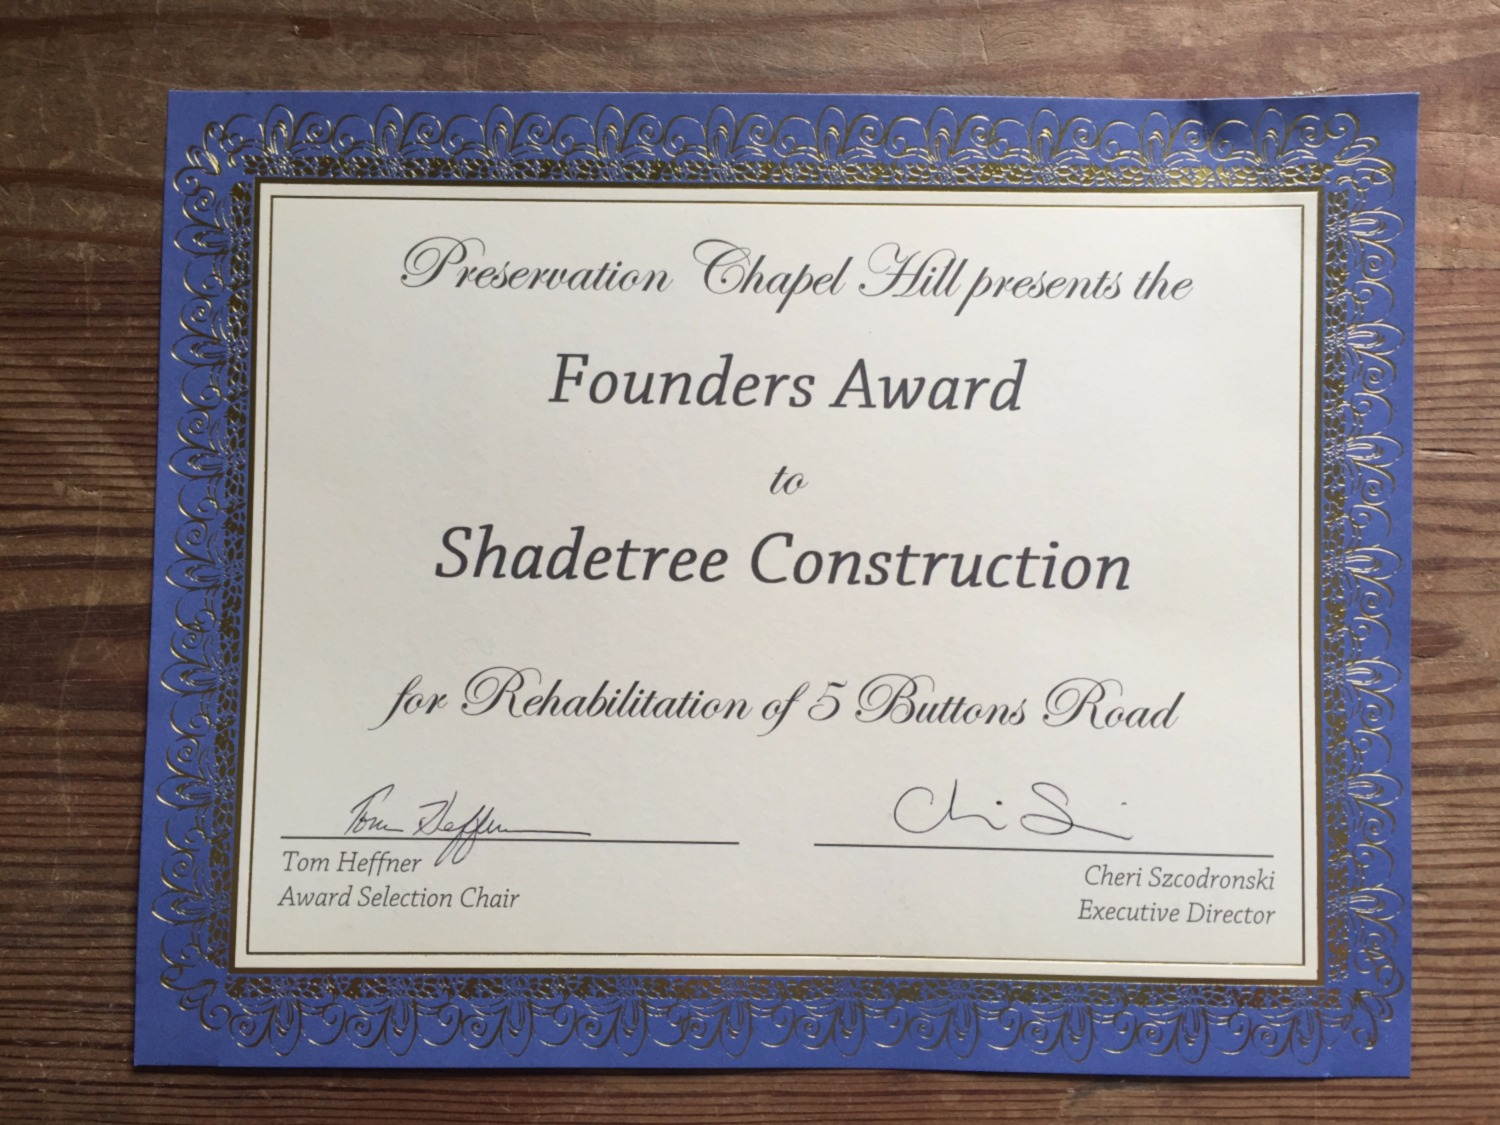 Shadetree Construction